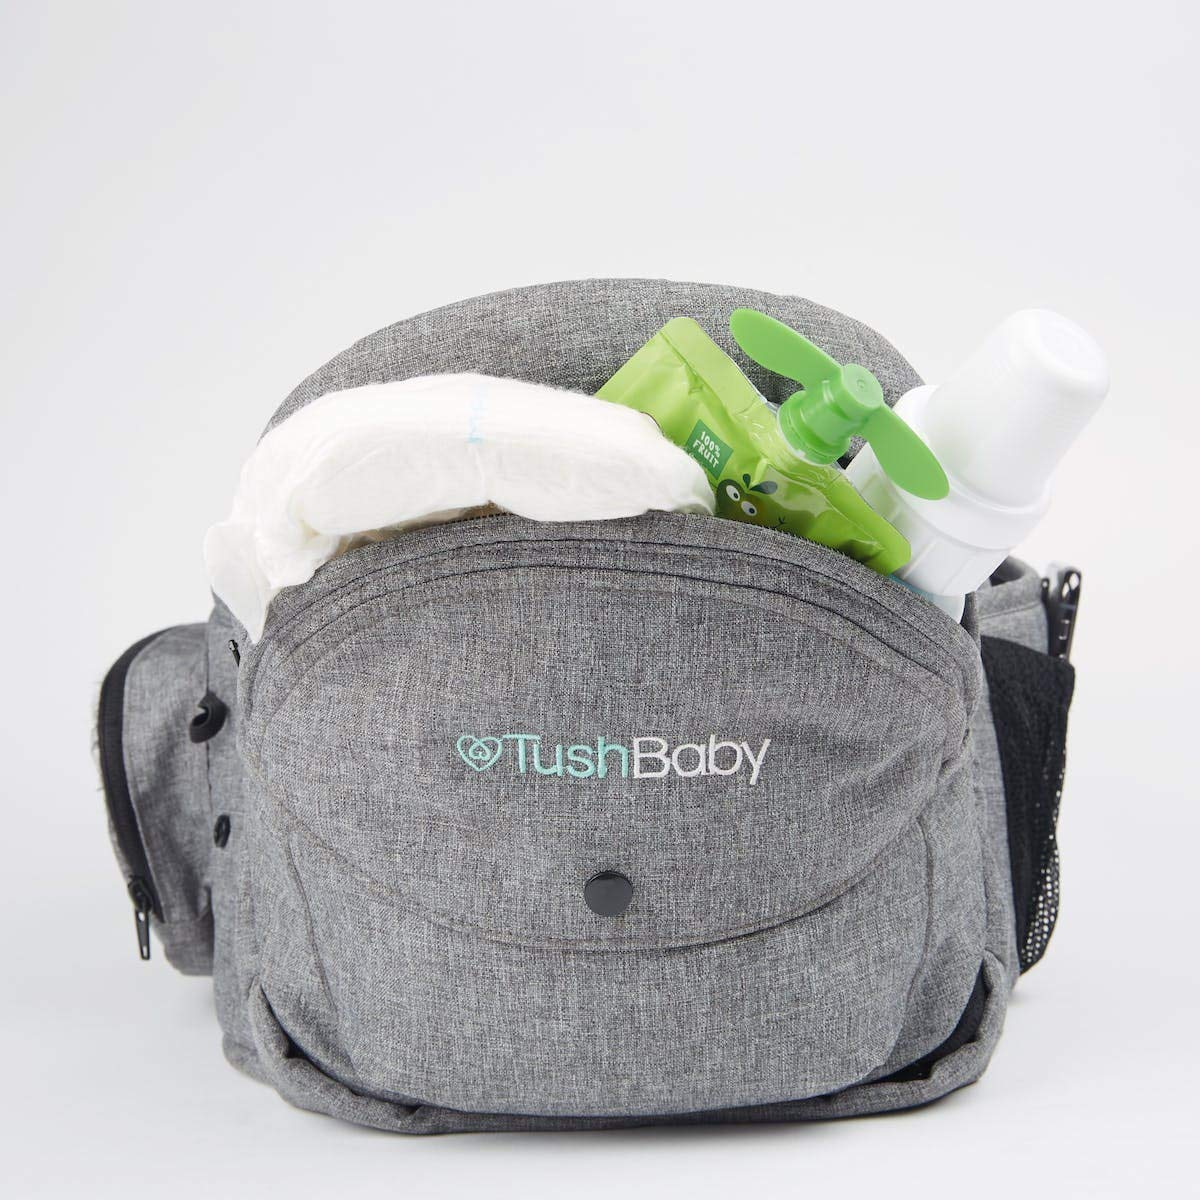 TushBaby The Original Hip Seat Baby Carrier, Grey by TushBaby (Image #7)